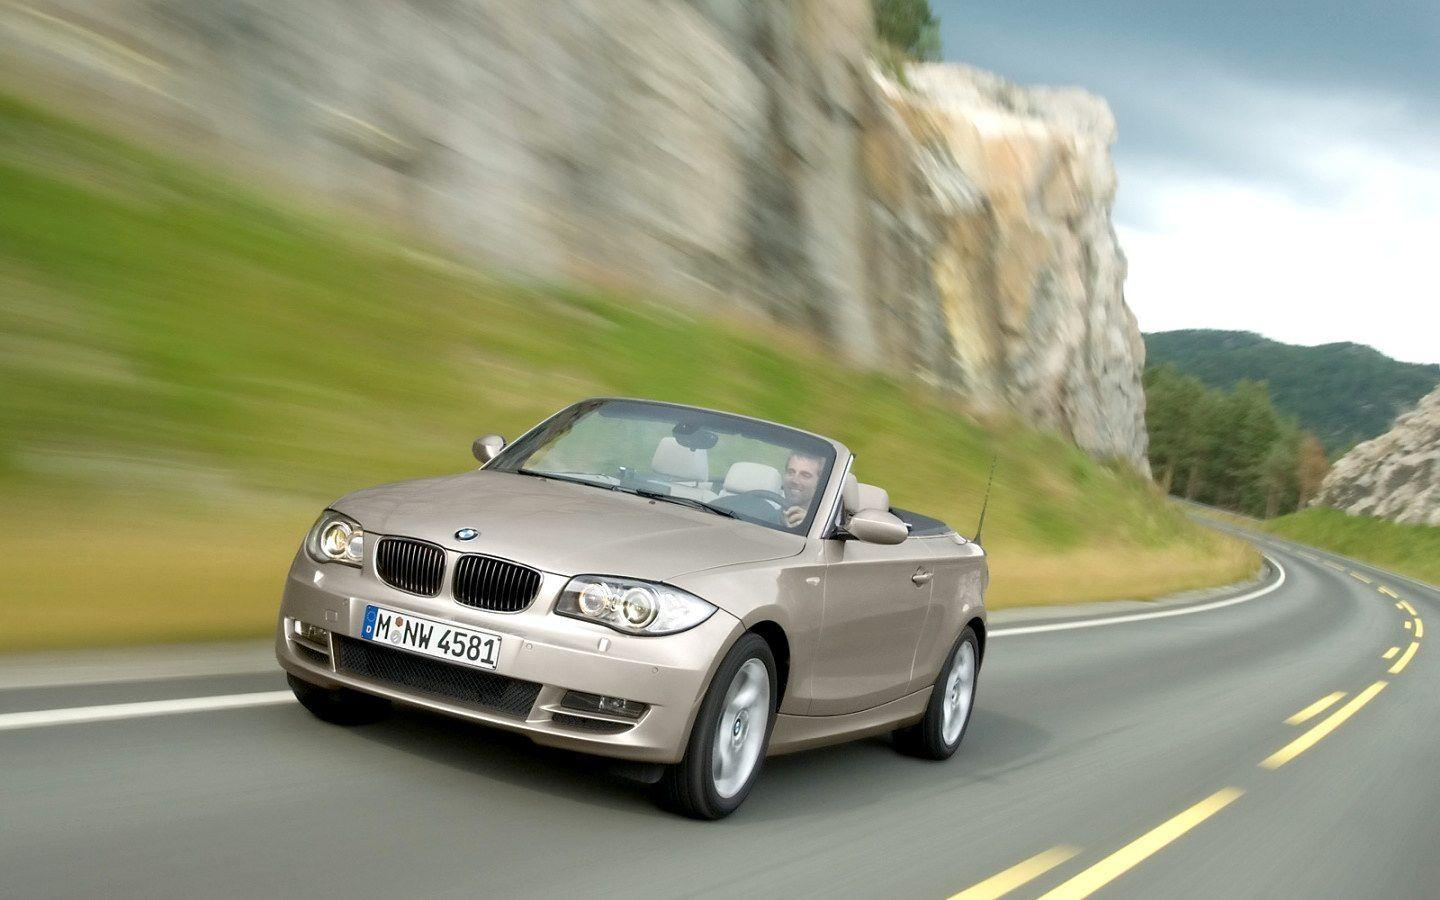 2008 BMW 1 Series Convertible Wallpaper 14 - 1440x900